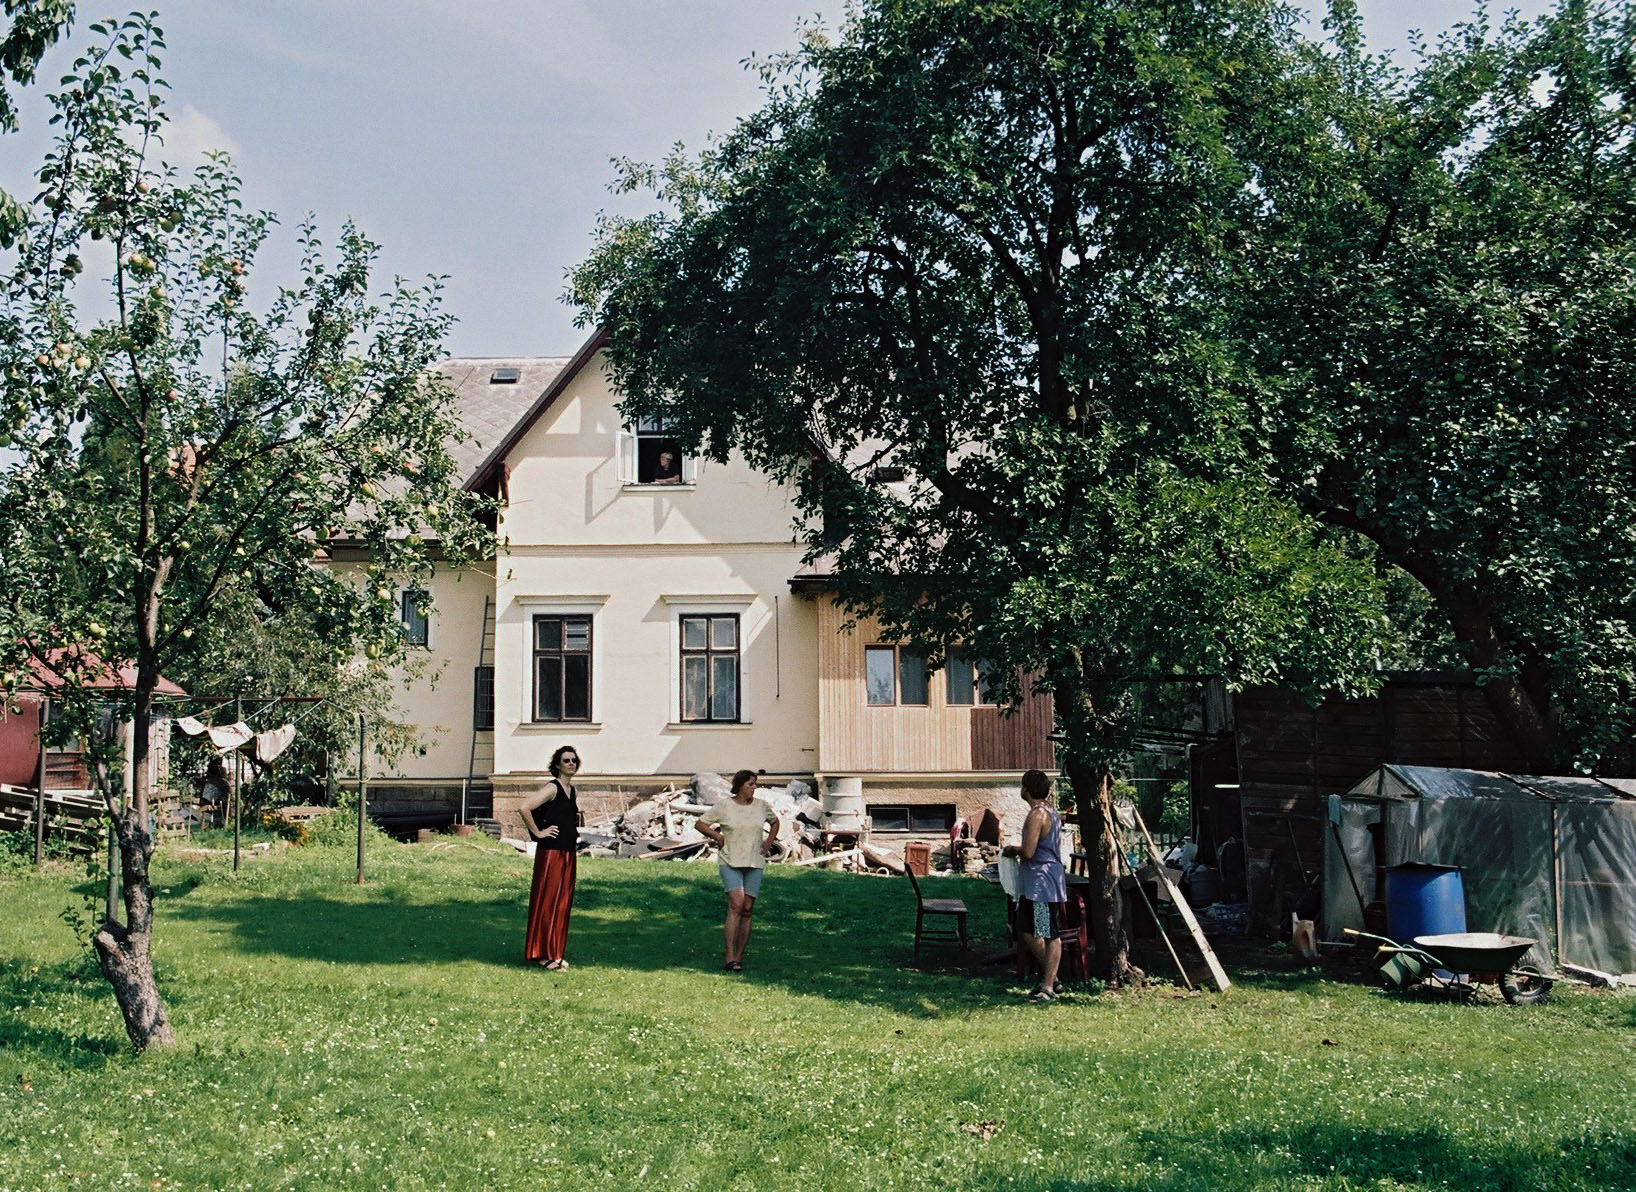 grassy backyard with fruit trees and white house in the background with three people standing in the yard